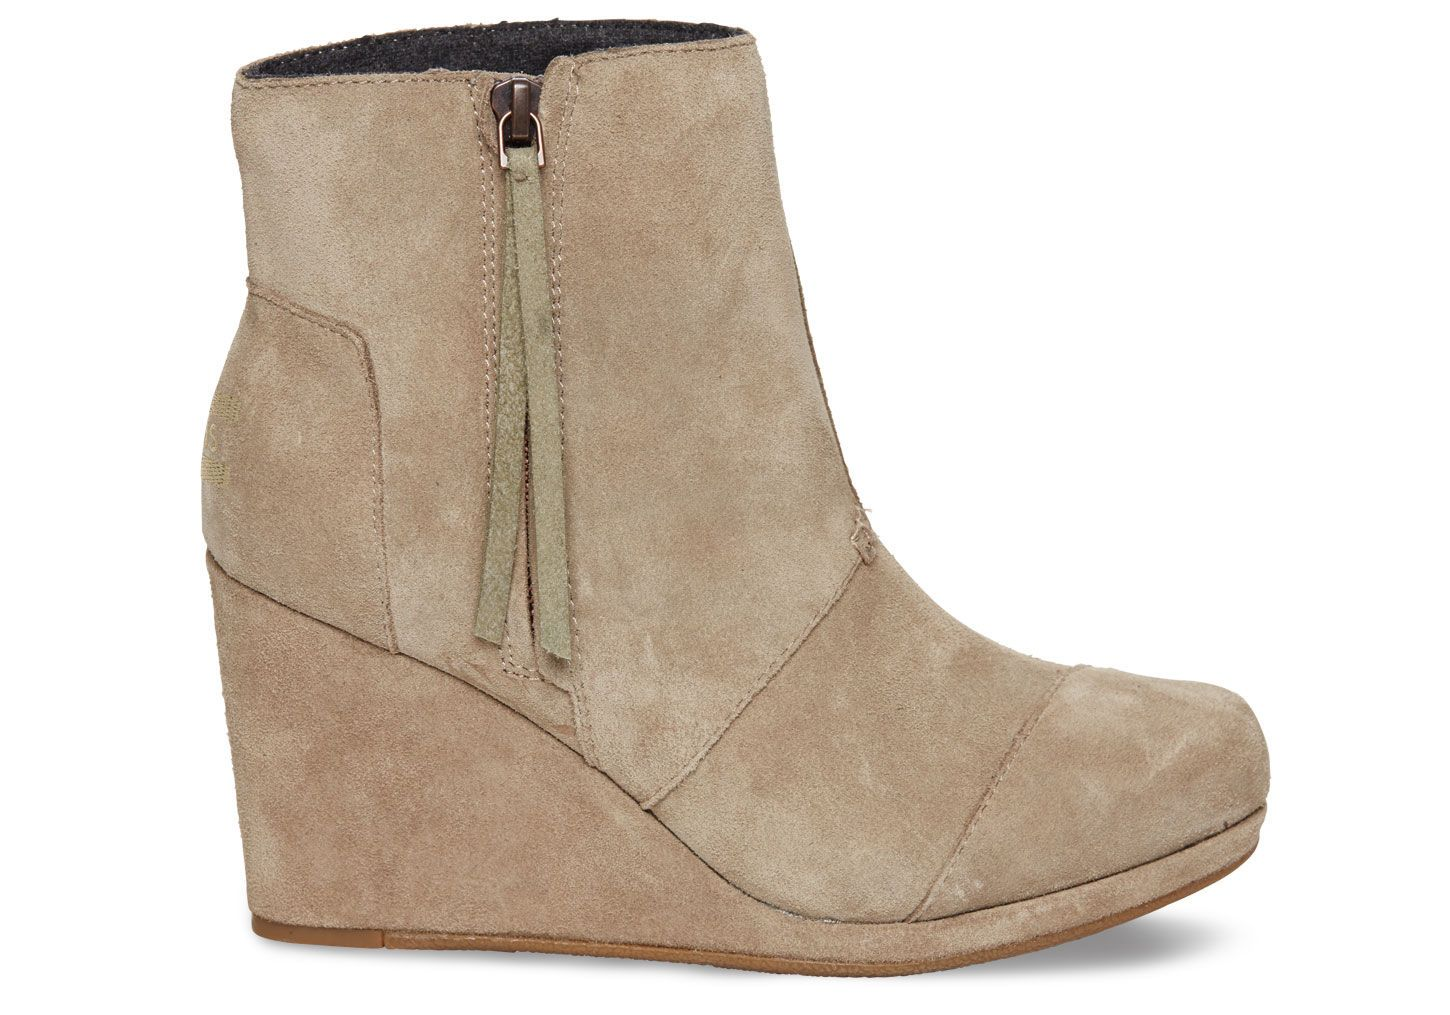 37775802ceb8 Taupe Suede Women s Desert Wedge Highs